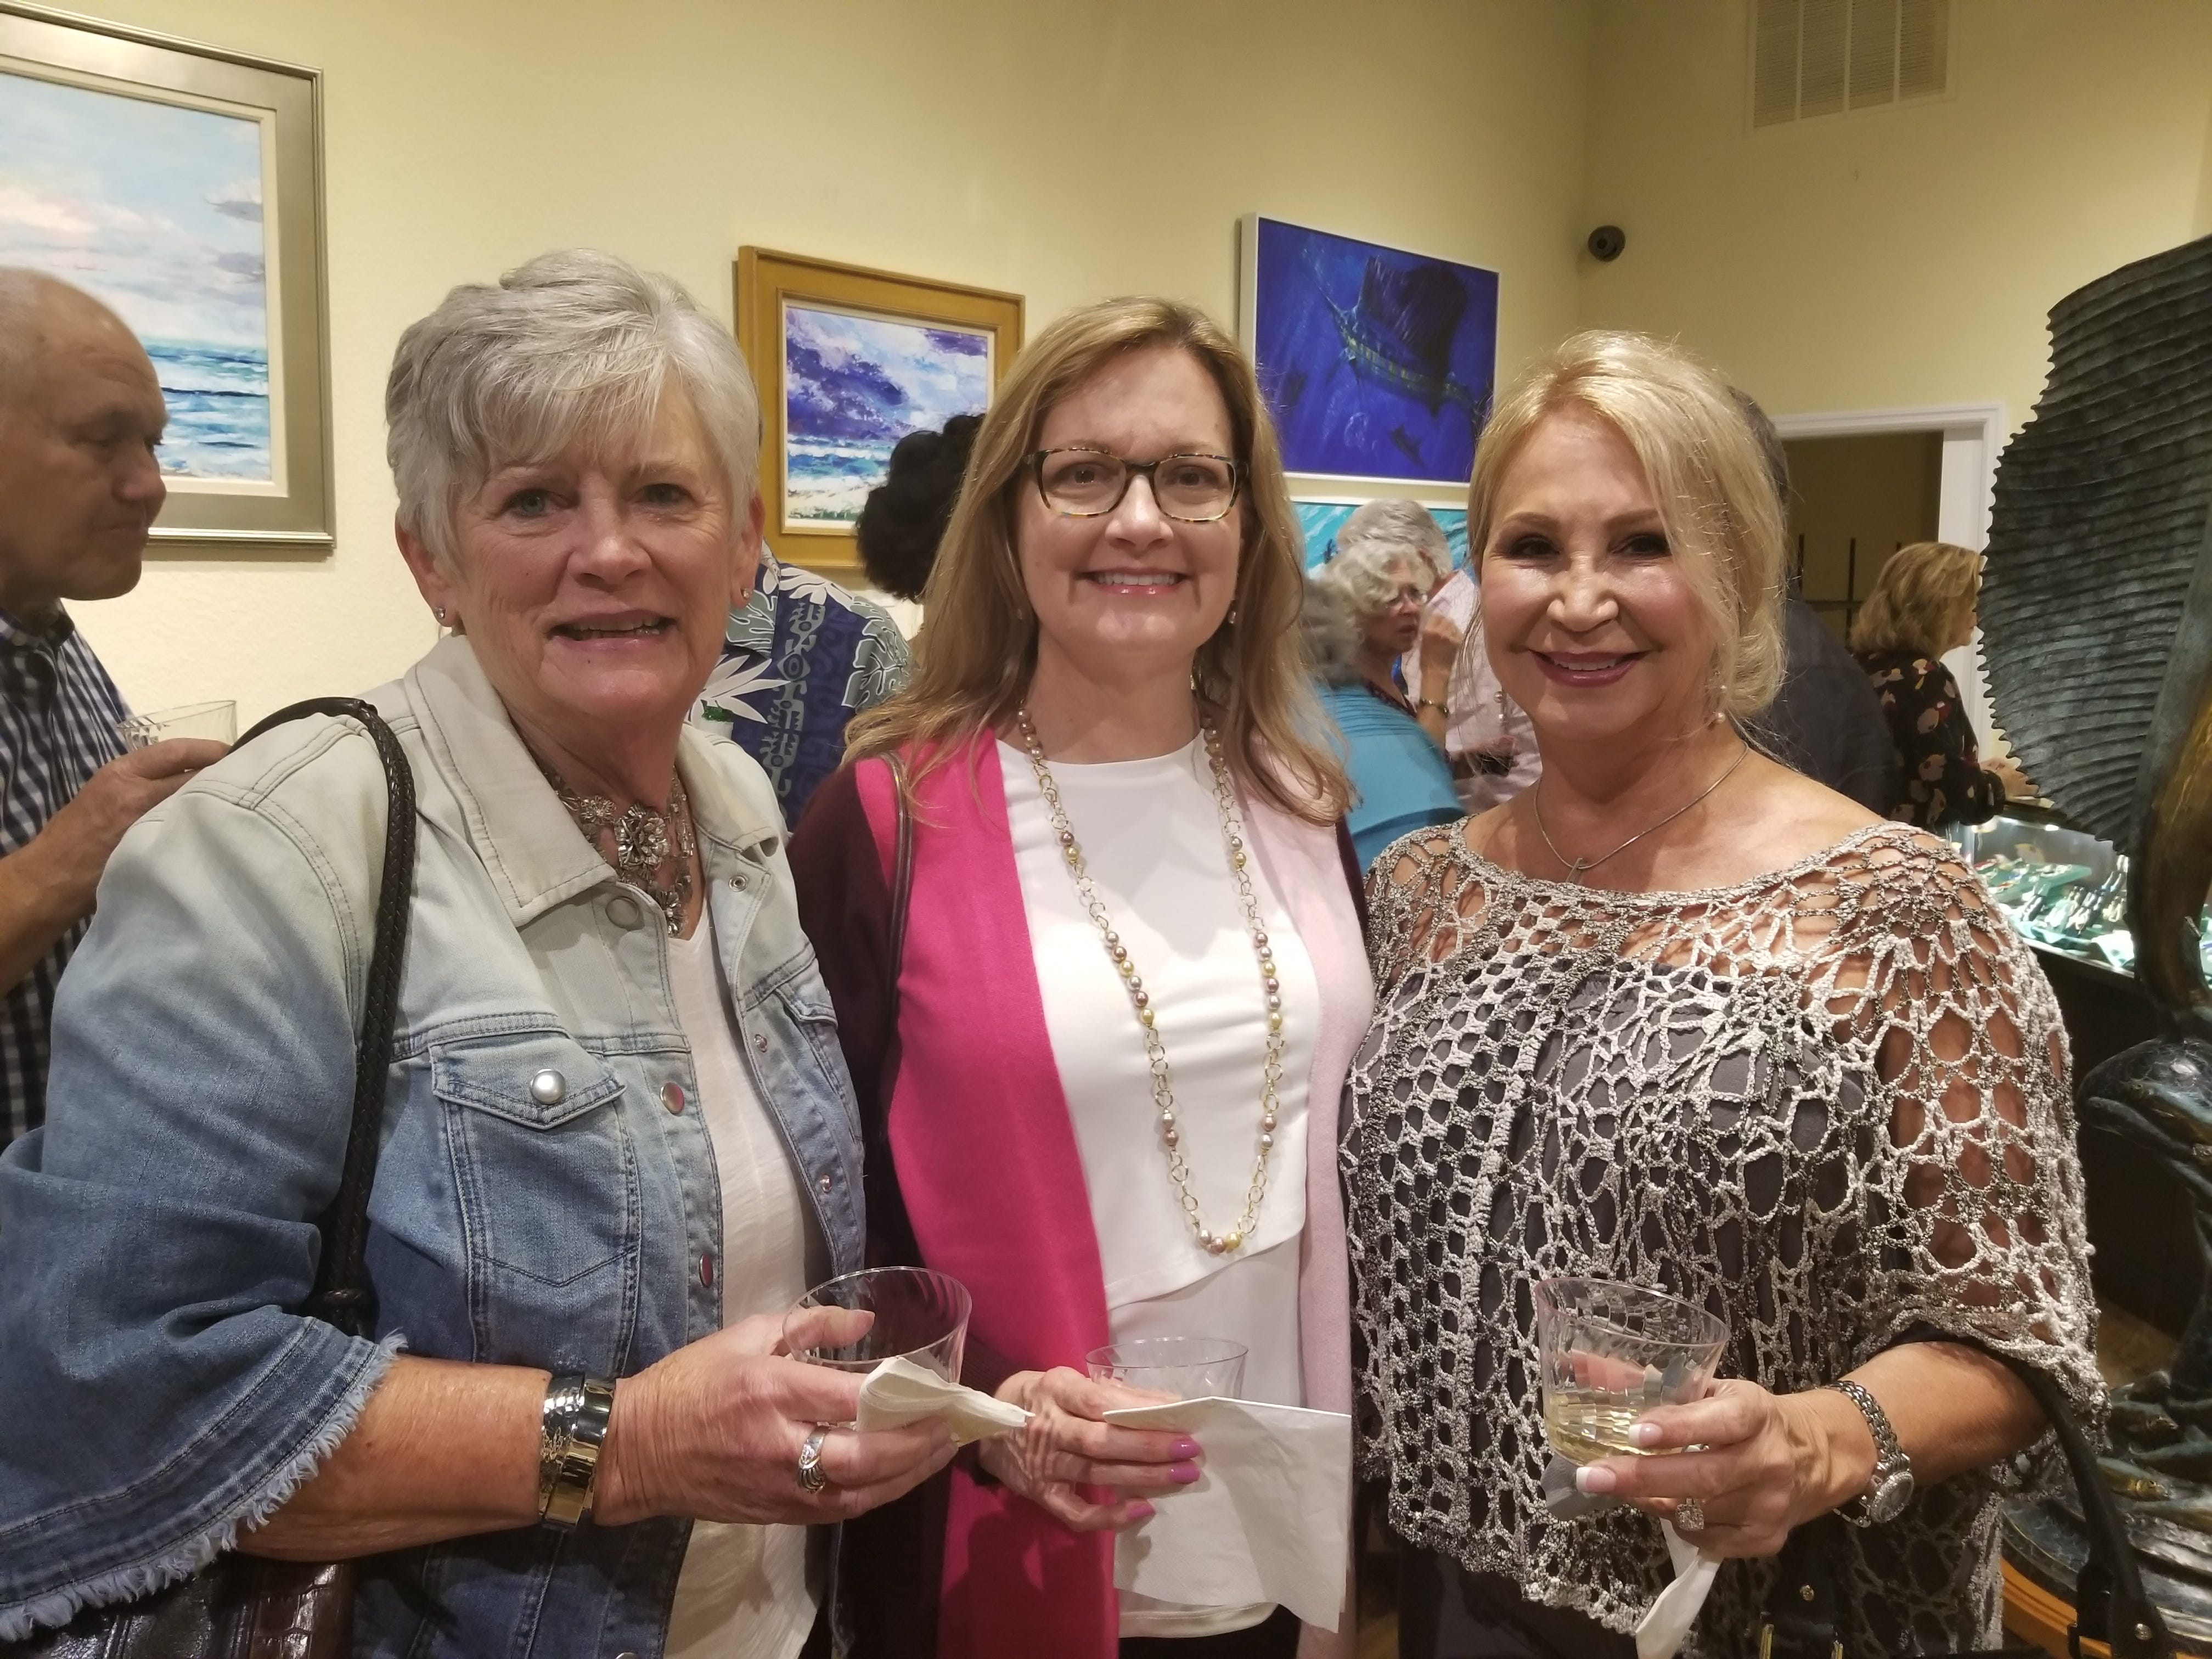 Tykes & Teens partnered with Stuart'sLyric Theatre and Geoffrey Smith Gallery to host a rocking evening of fun for Tykes & Teens supporters. Pictured are Linda Arnold, left, Mary Fields and Reina Bianchi.